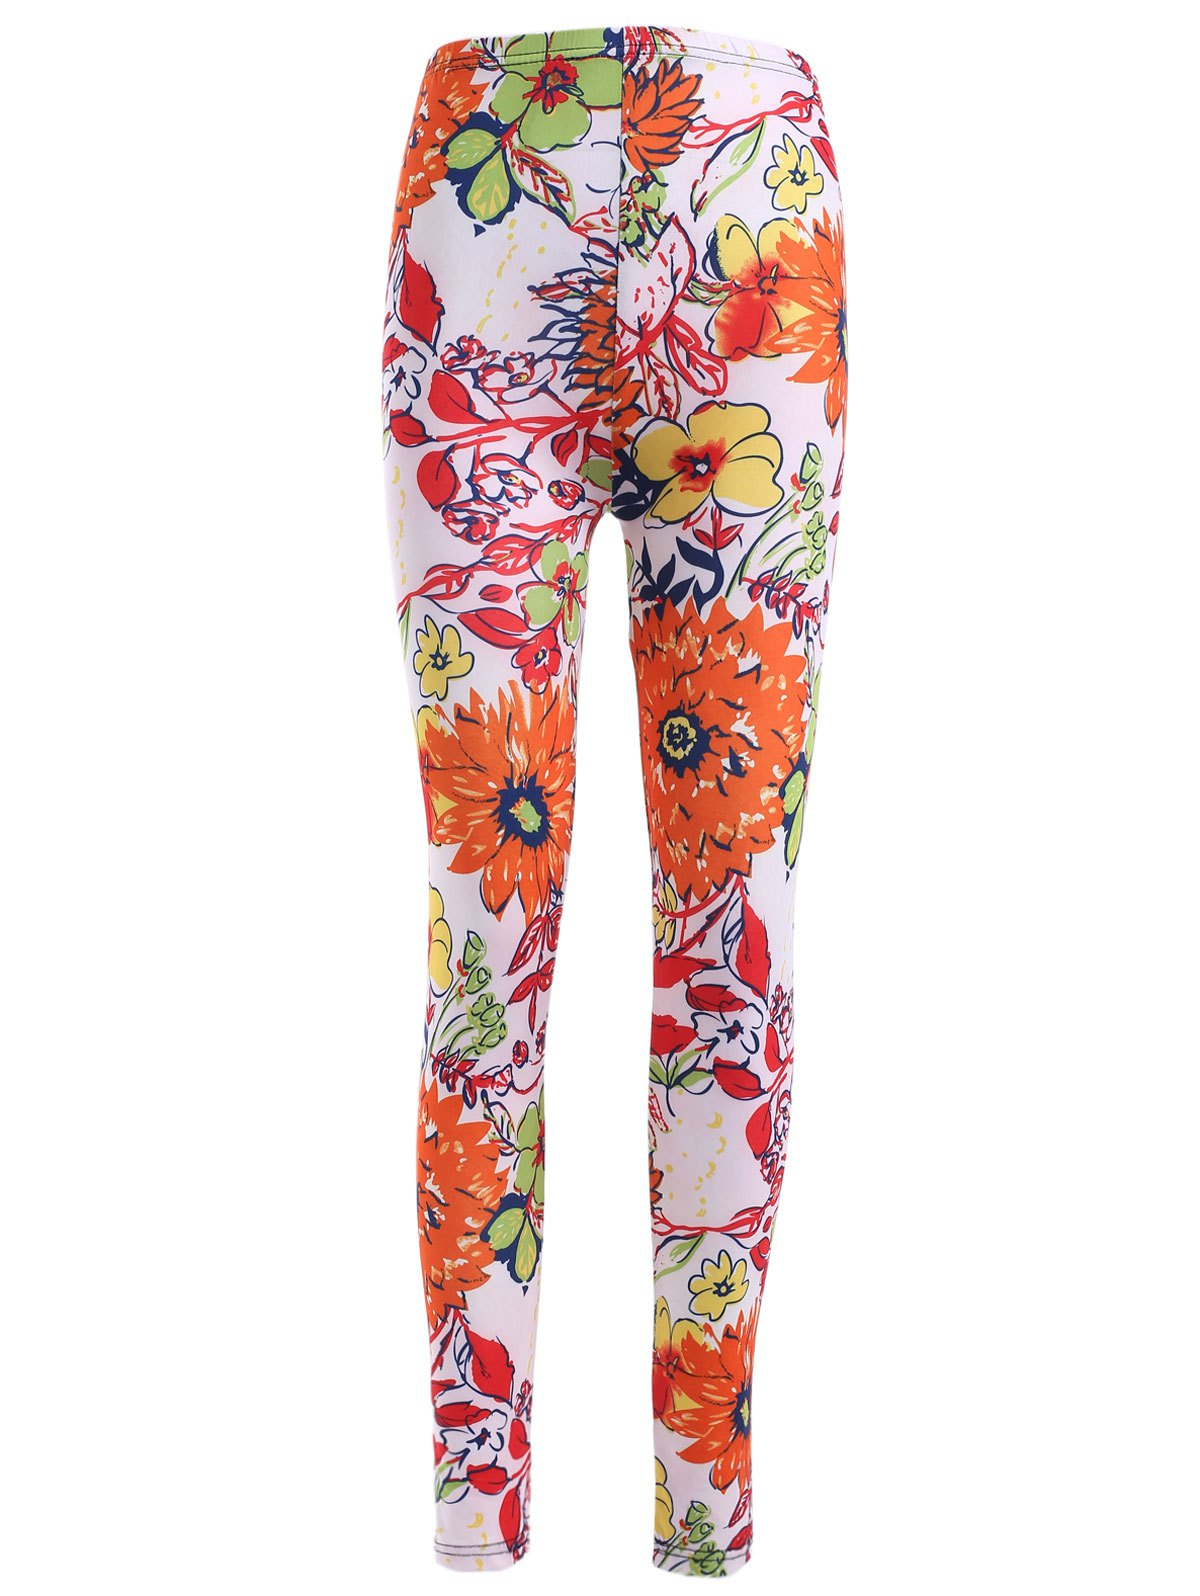 Causal Elastic Waist Floral Printing Skinny Stretch Pants For Women - ORANGE RED ONE SIZE(FIT SIZE XS TO M)